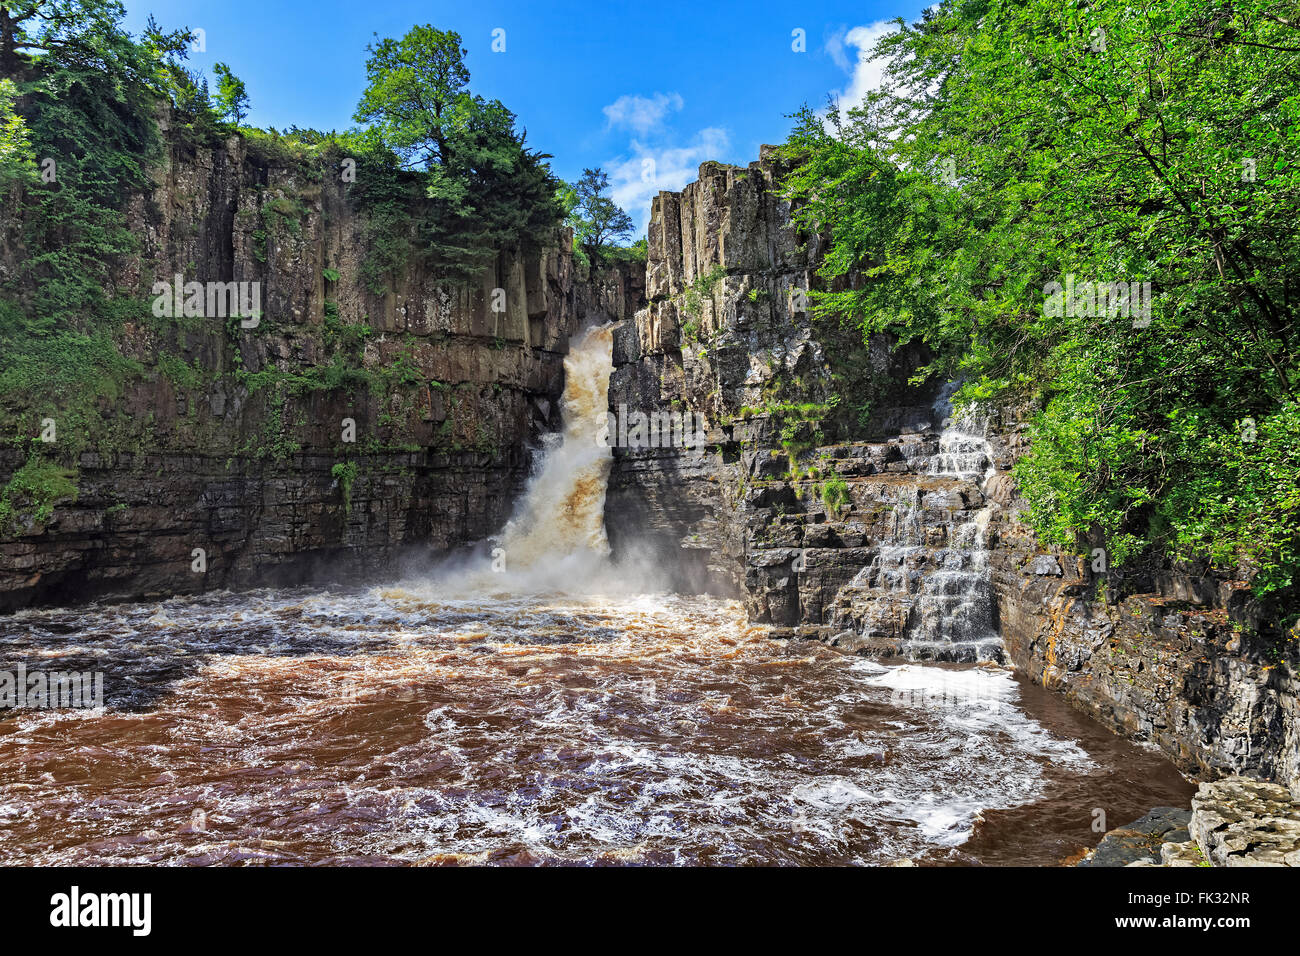 High Force falls, River Tees, Teesdale, Durham, England, United Kingdom - Stock Image